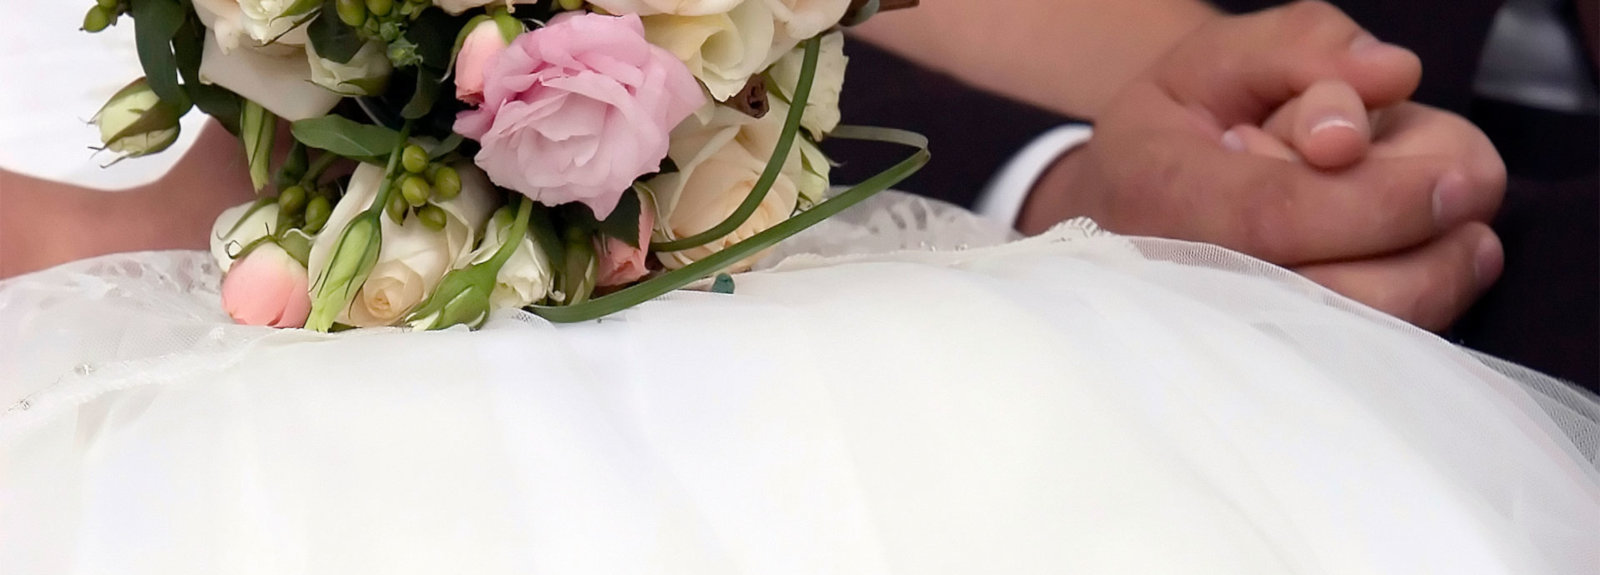 Getting married? Contact us to arrange your special day.